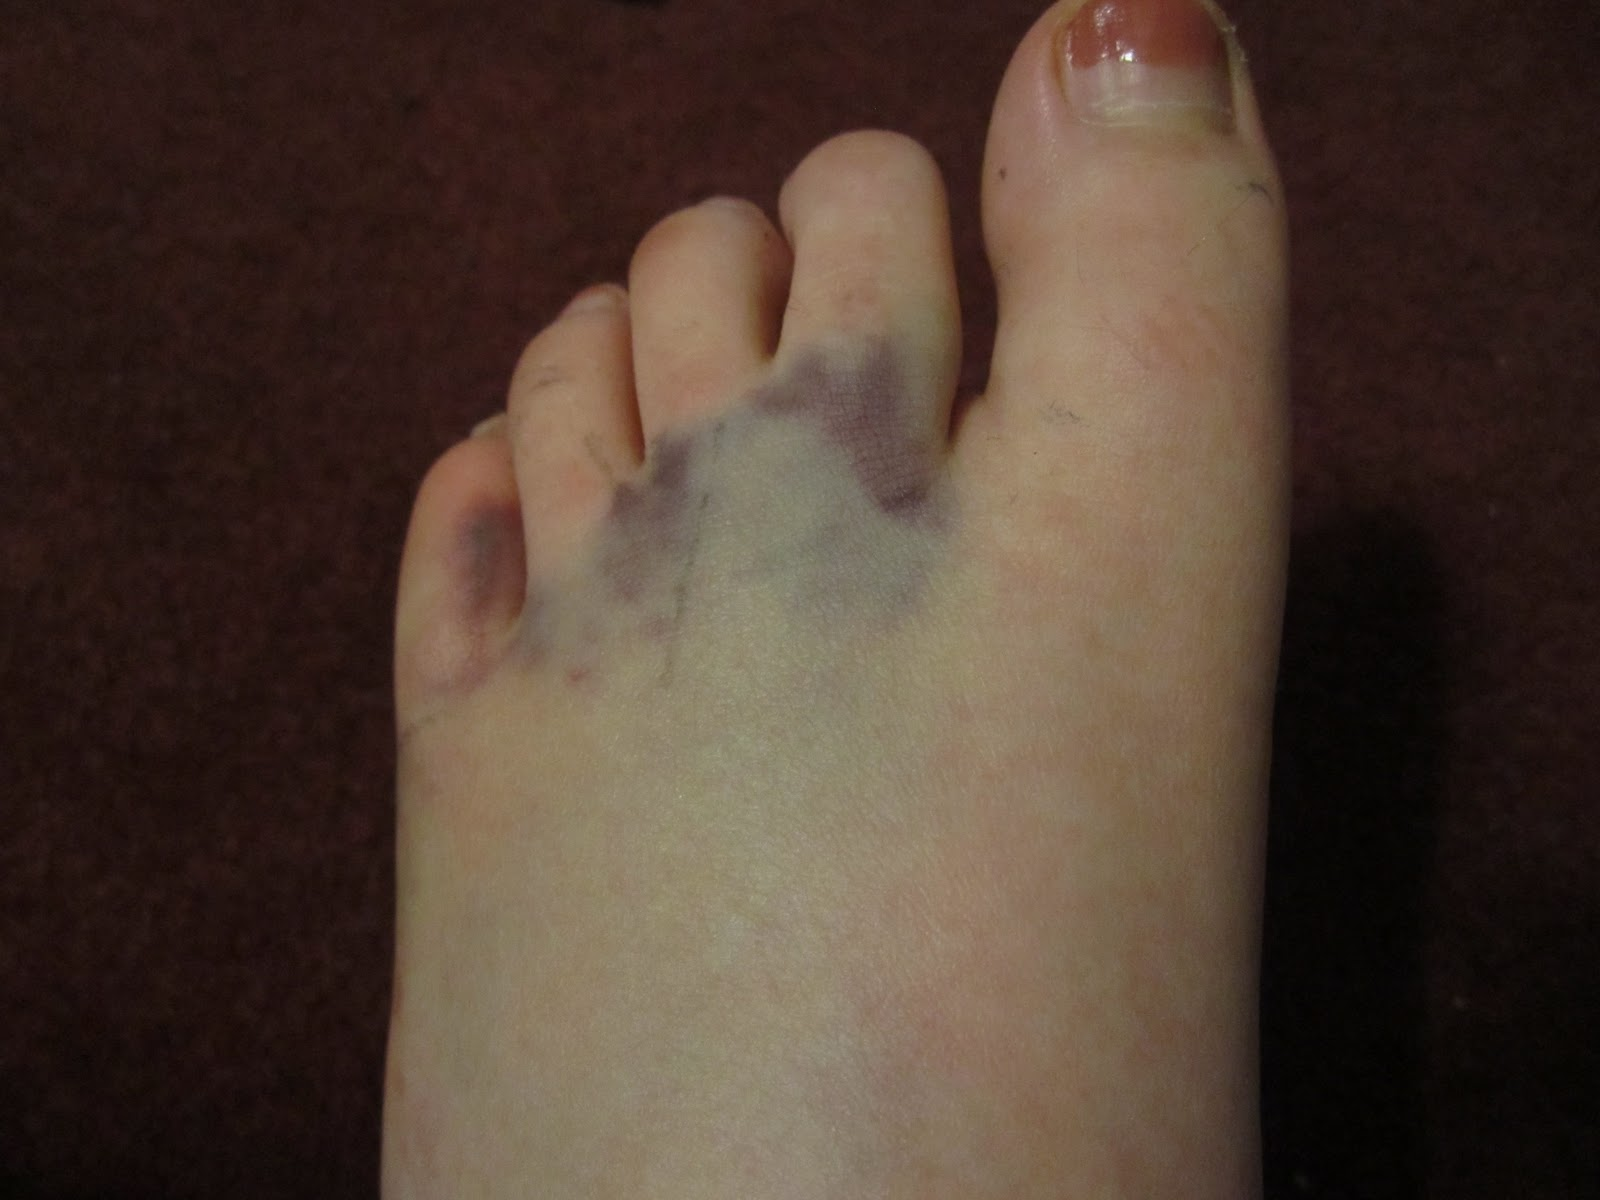 Of toes broken pictures